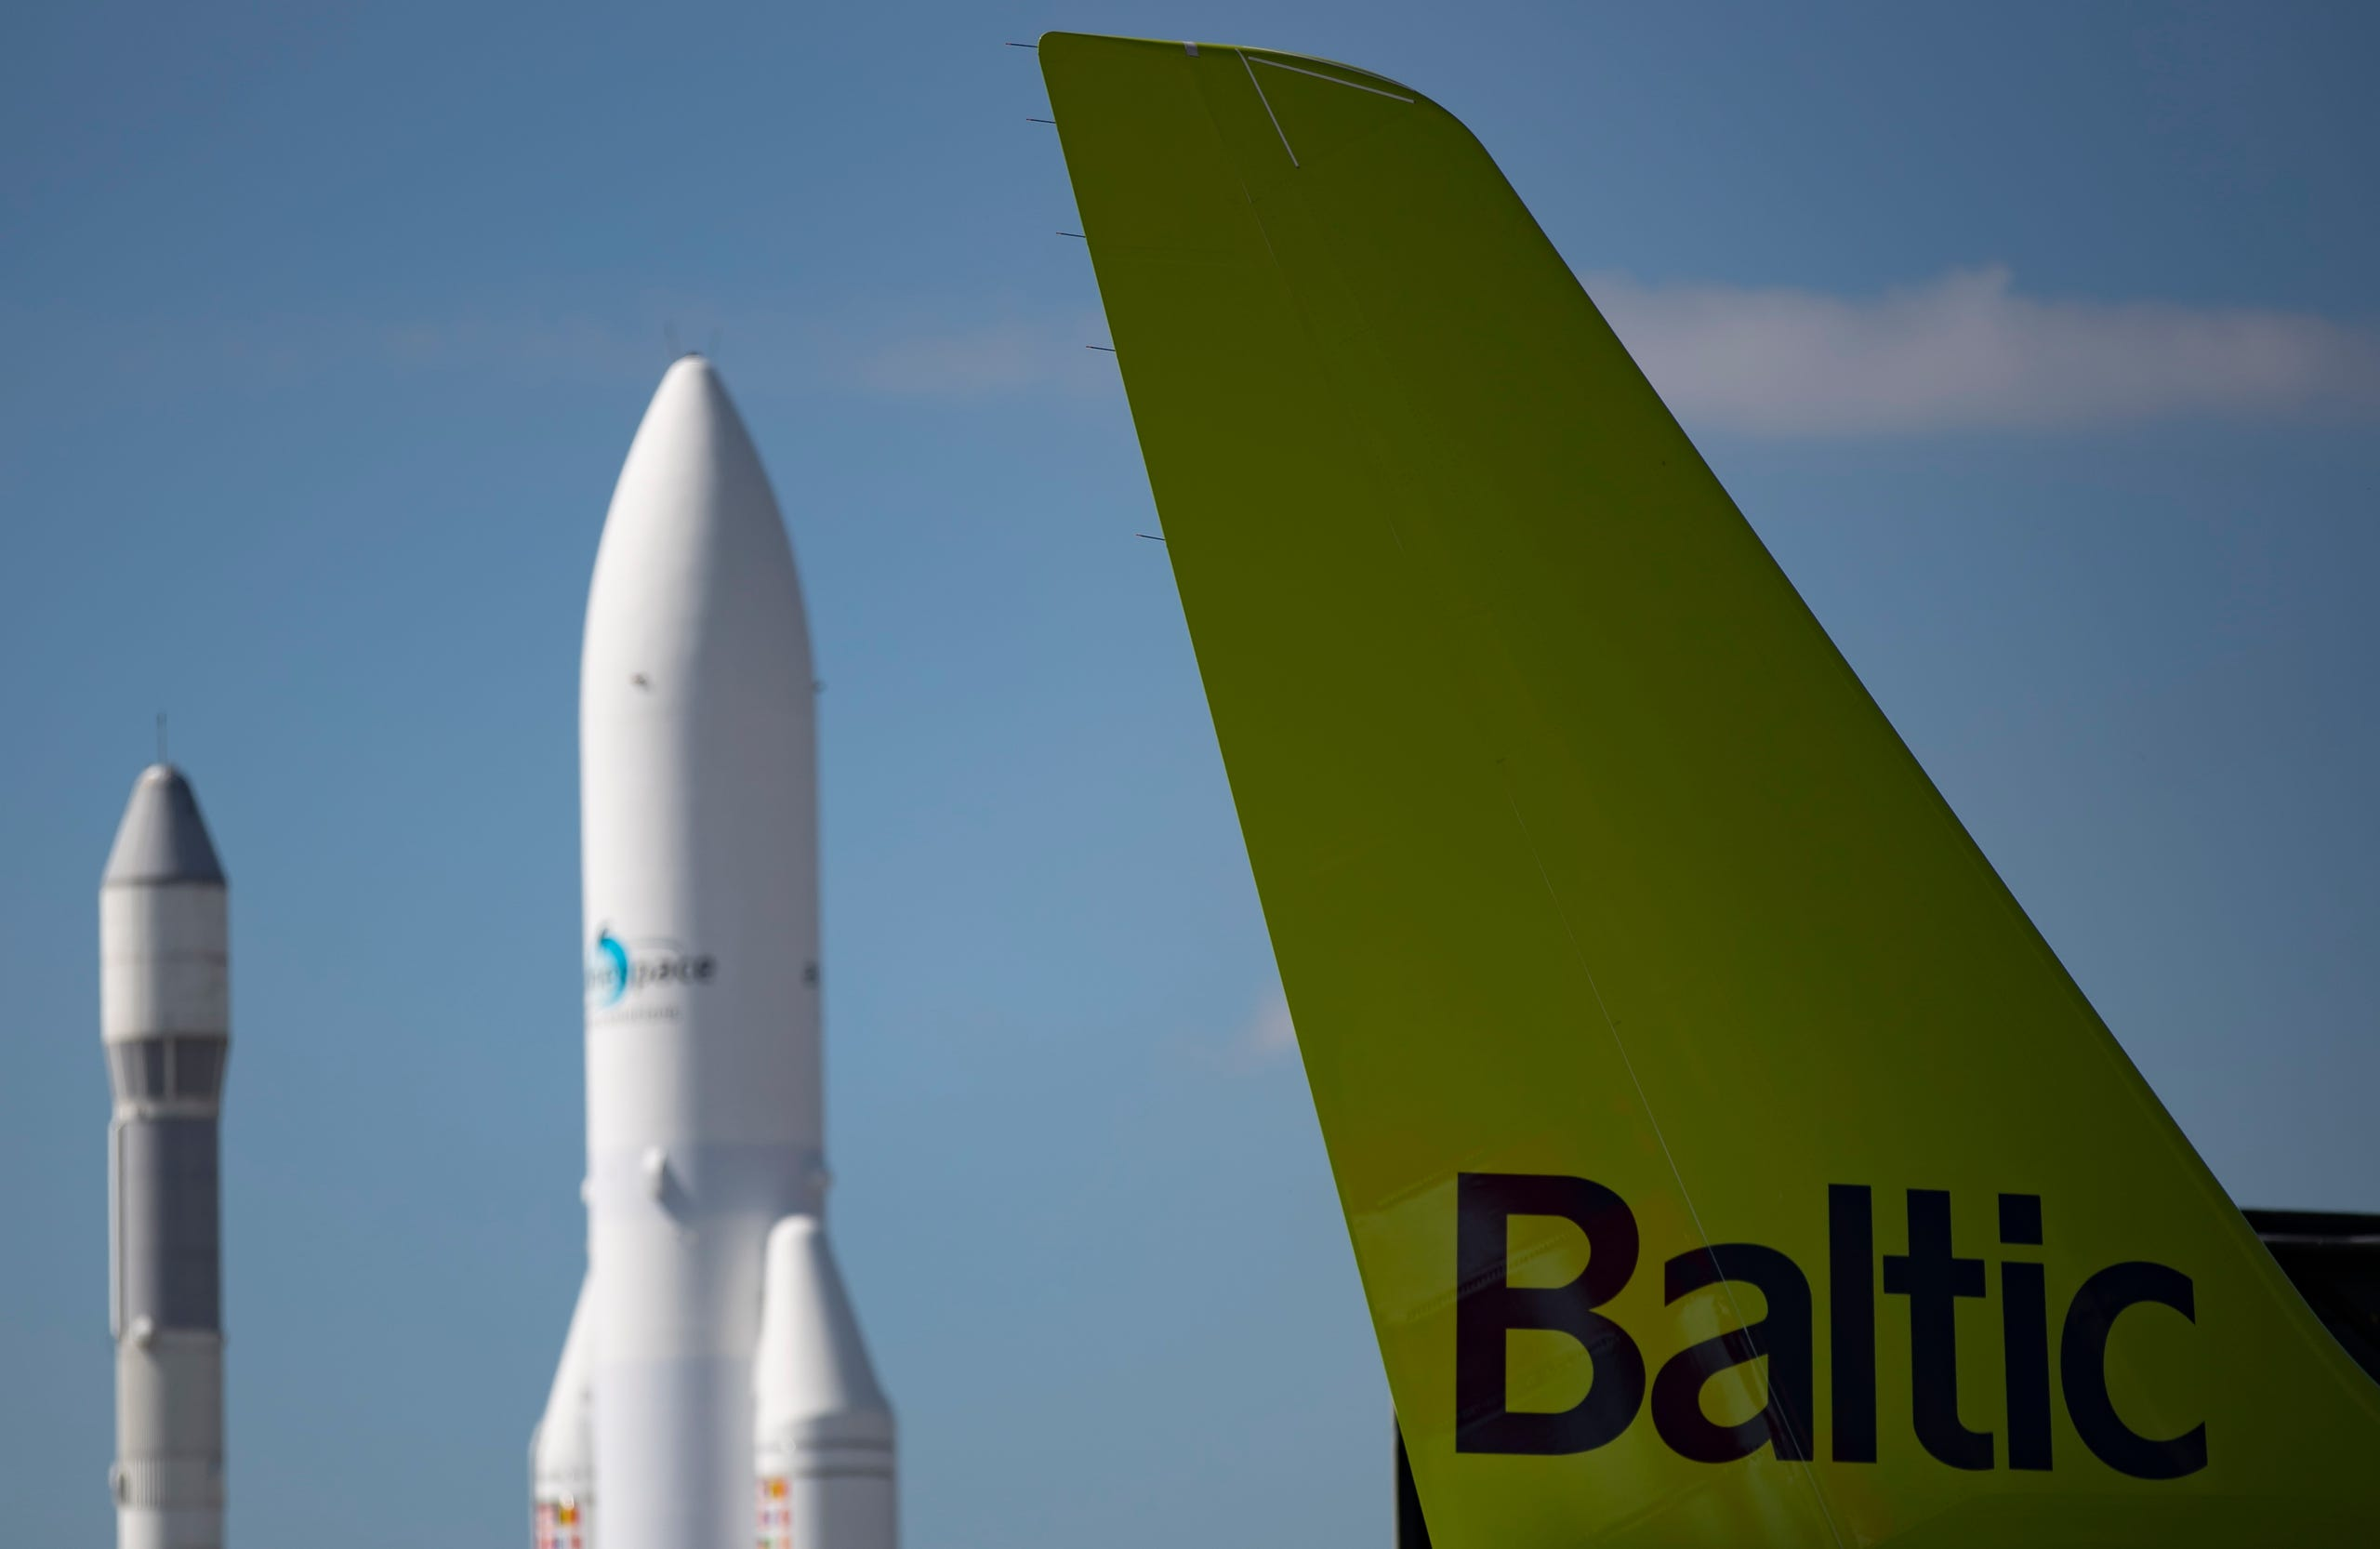 The logo of Baltic on an airplane tail, June 17, 2019.